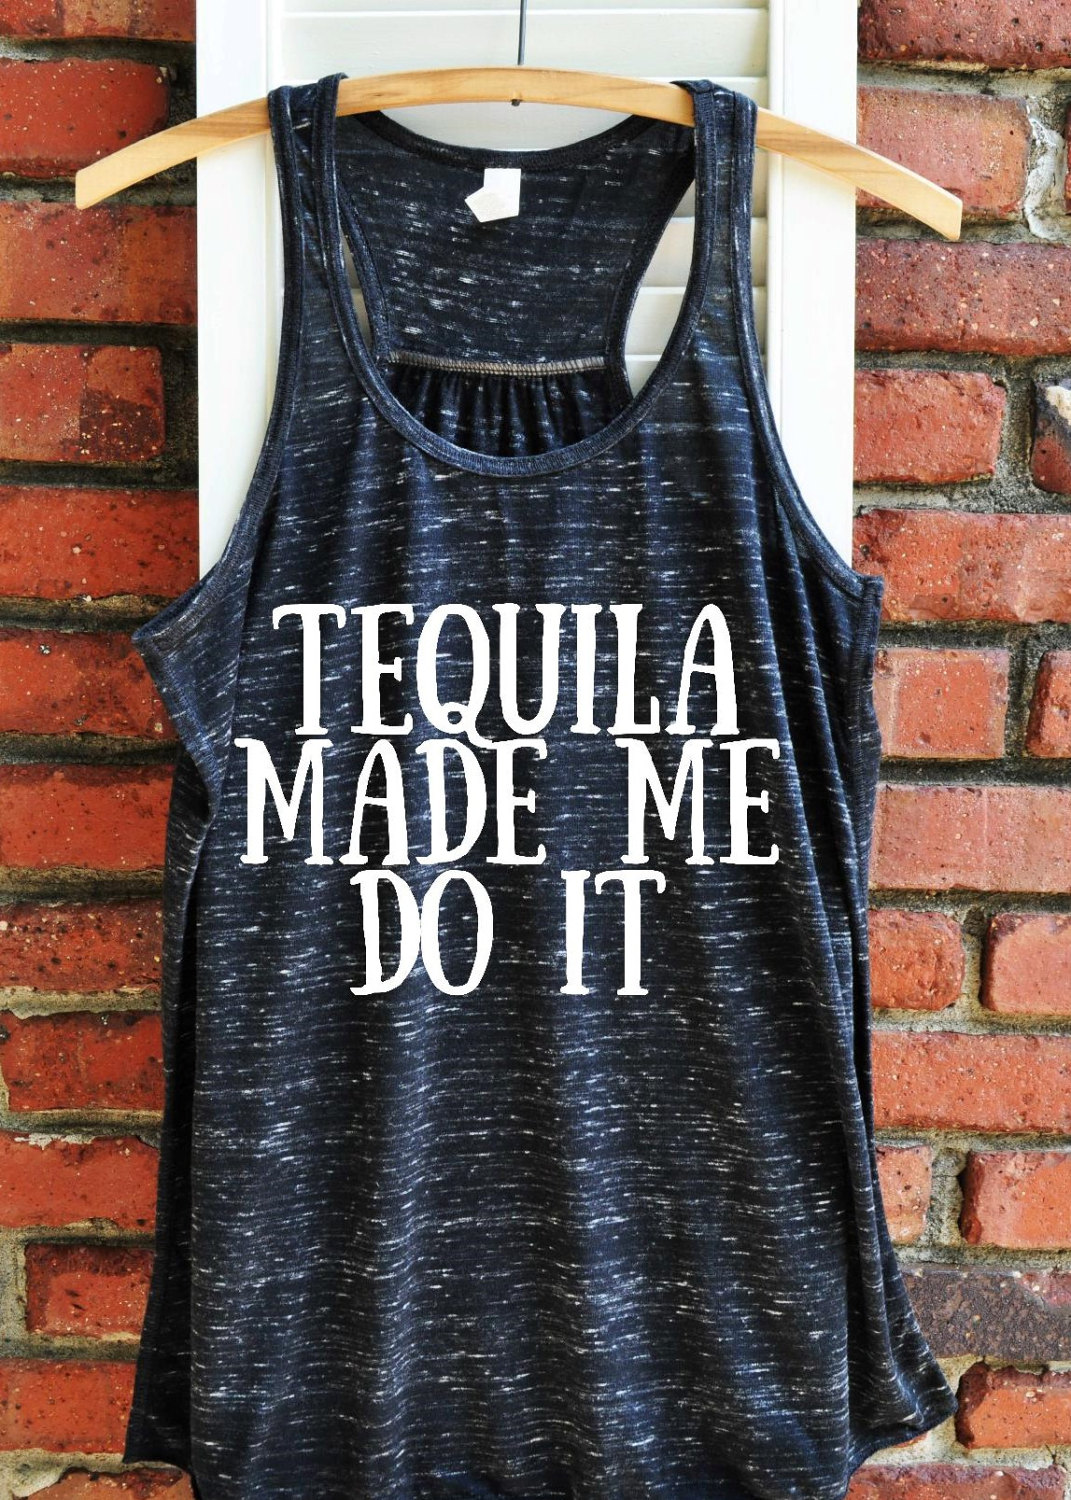 5b81d24932 Tequila made me do it Women's Tank Top Tequila lover | Etsy